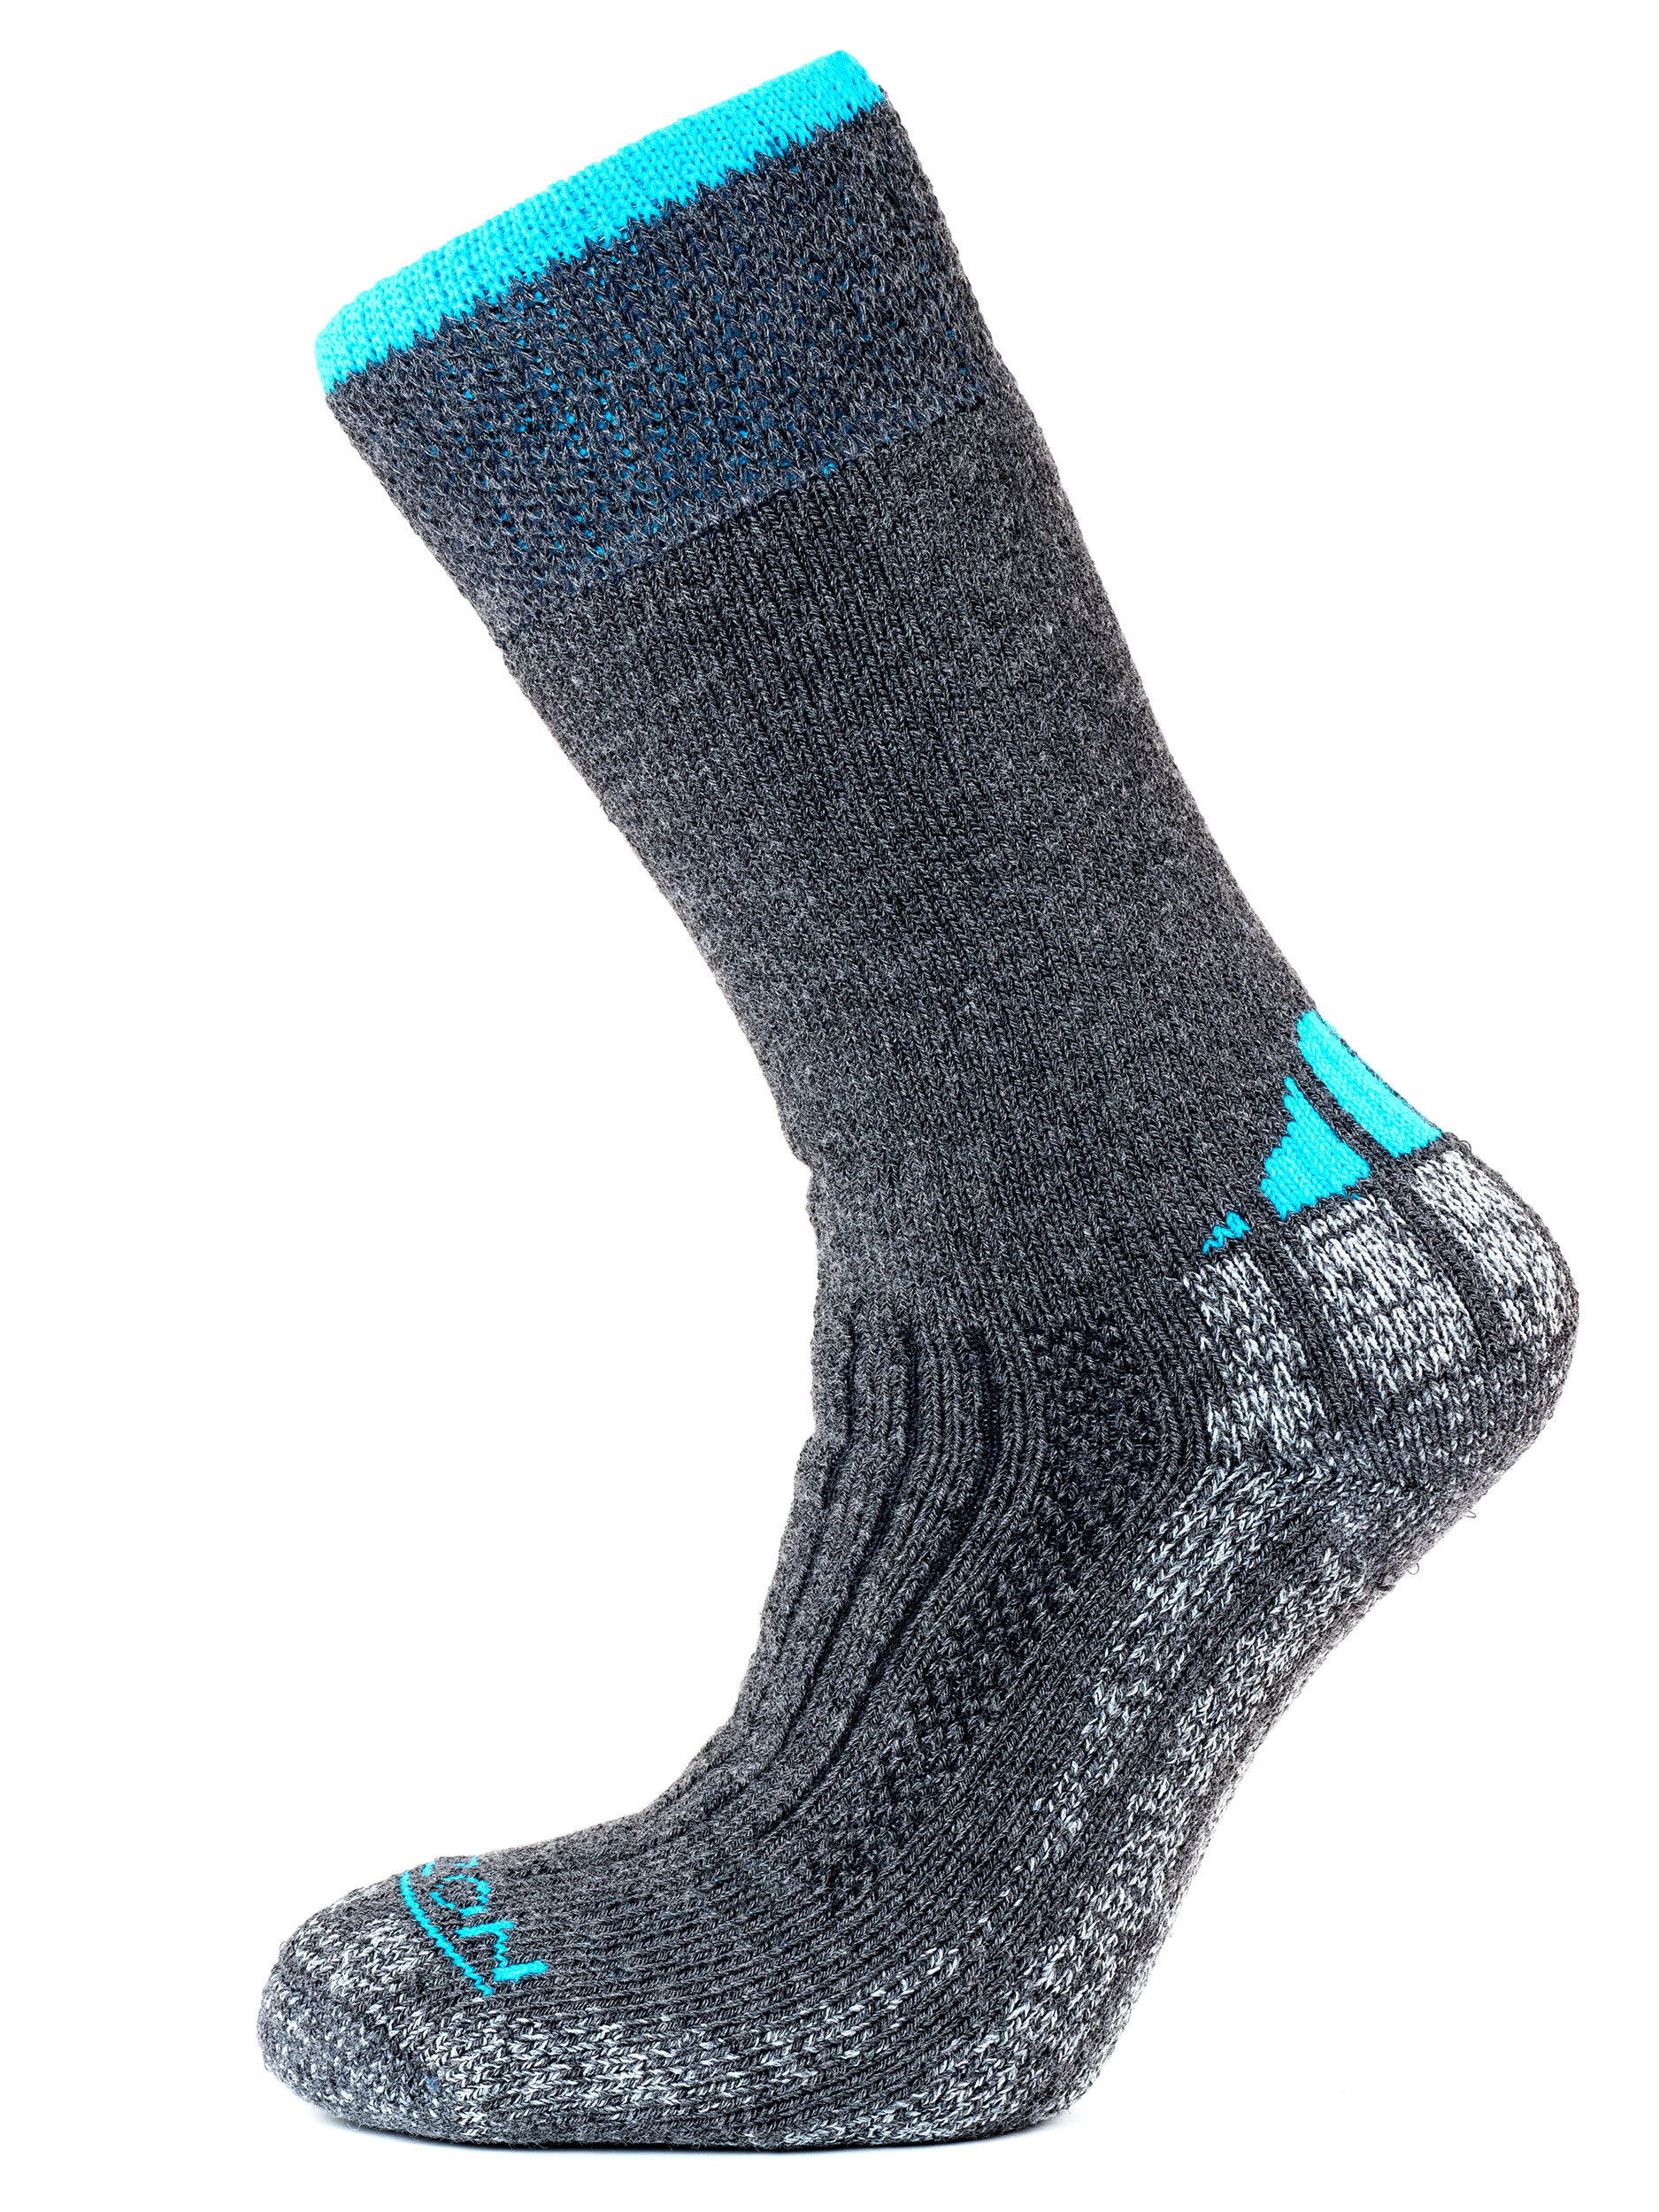 Expedition Charcoal/Turquoise